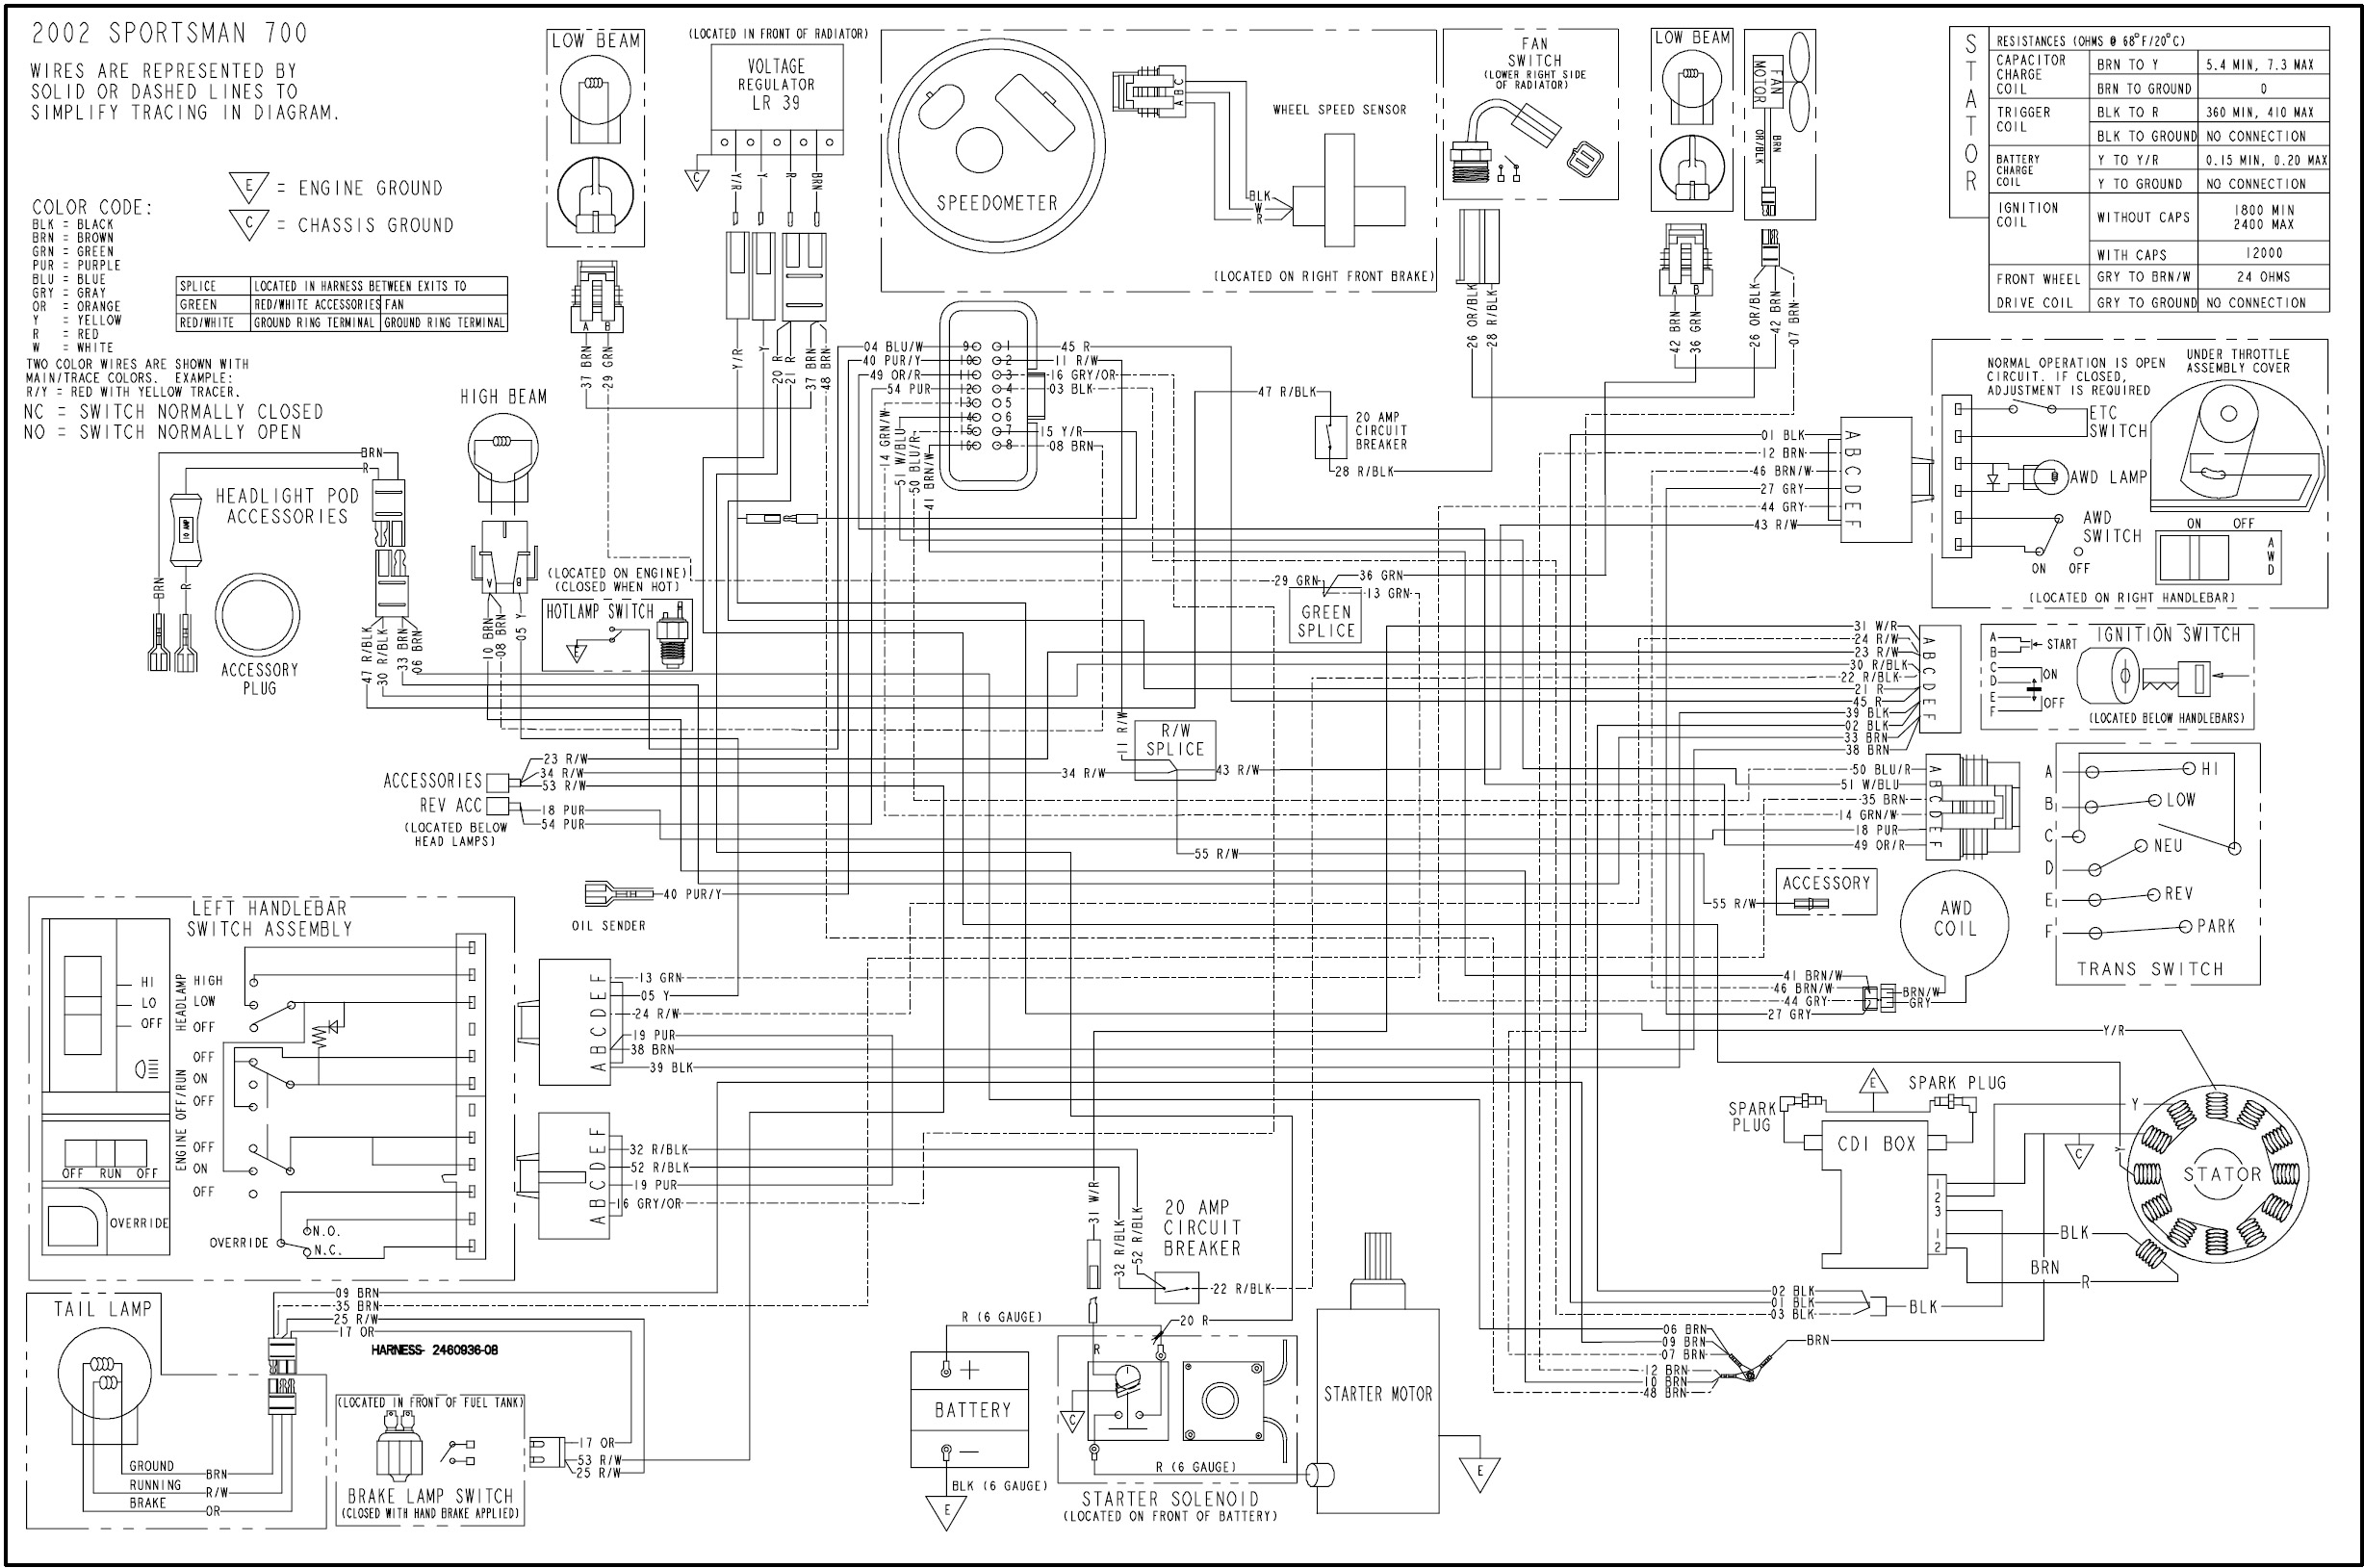 wd_700_02 wiring diagram 2003 polaris 600 atv readingrat net polaris 500 wiring diagram at virtualis.co